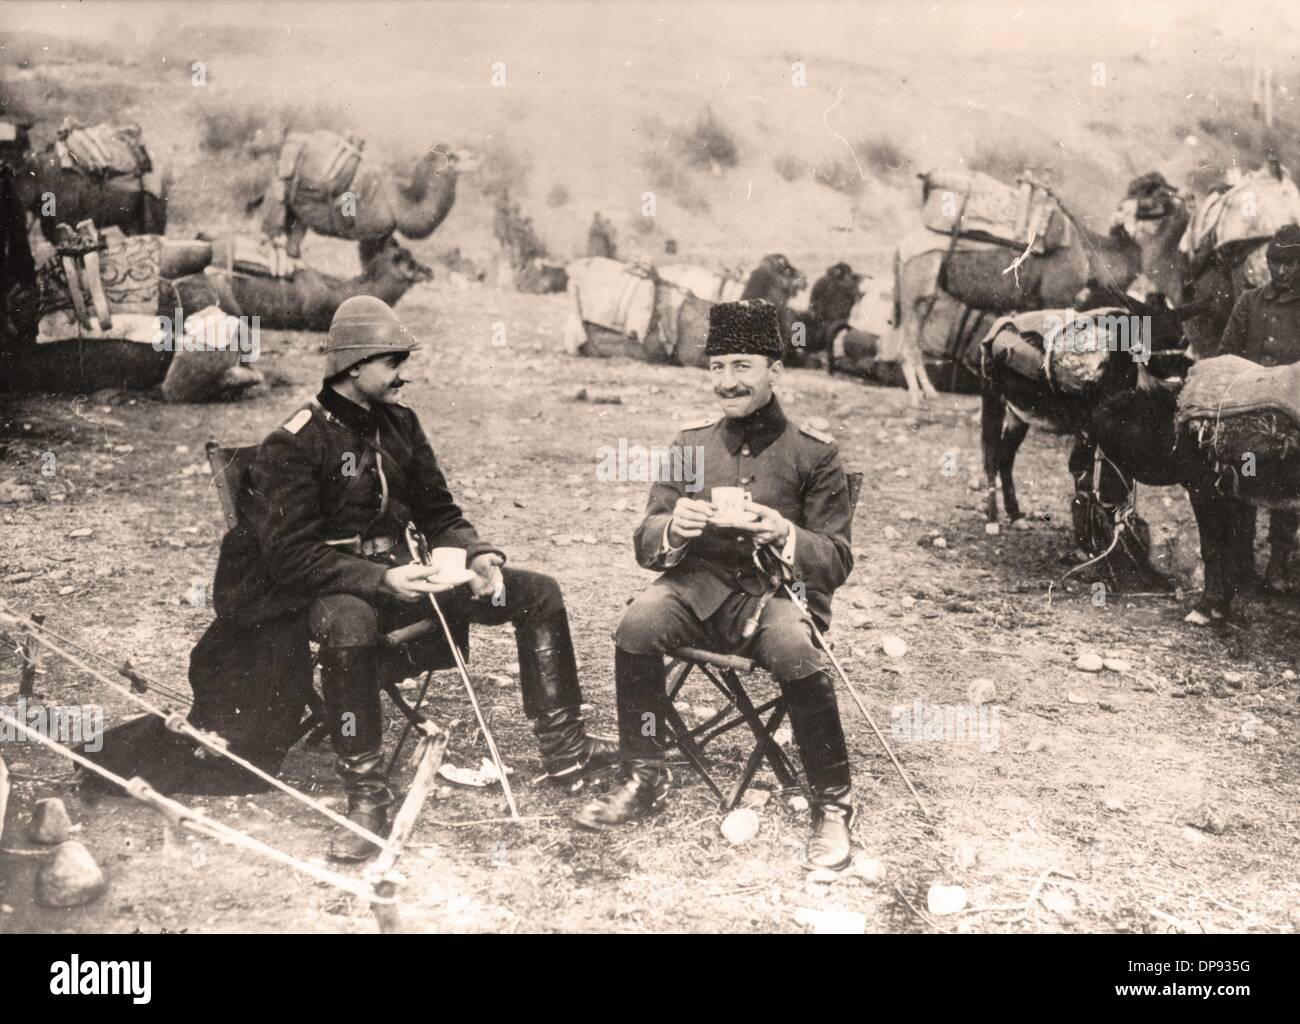 Officers of the Turkish camel cavalry during a coffee break on their march through Syria in 1915. Place unknown. The Sinai and Palestine Campaign was a secondary theatre of war between the Ottoman Empire and Great Britain during World War I (1915-1918). The Ottoman Empire, as a an ally of the Central Powers, was supported by German (Asia Corps) and Austro-Hungarian troops in Palestine. Photo: Berliner Verlag/Archiv - Stock Image